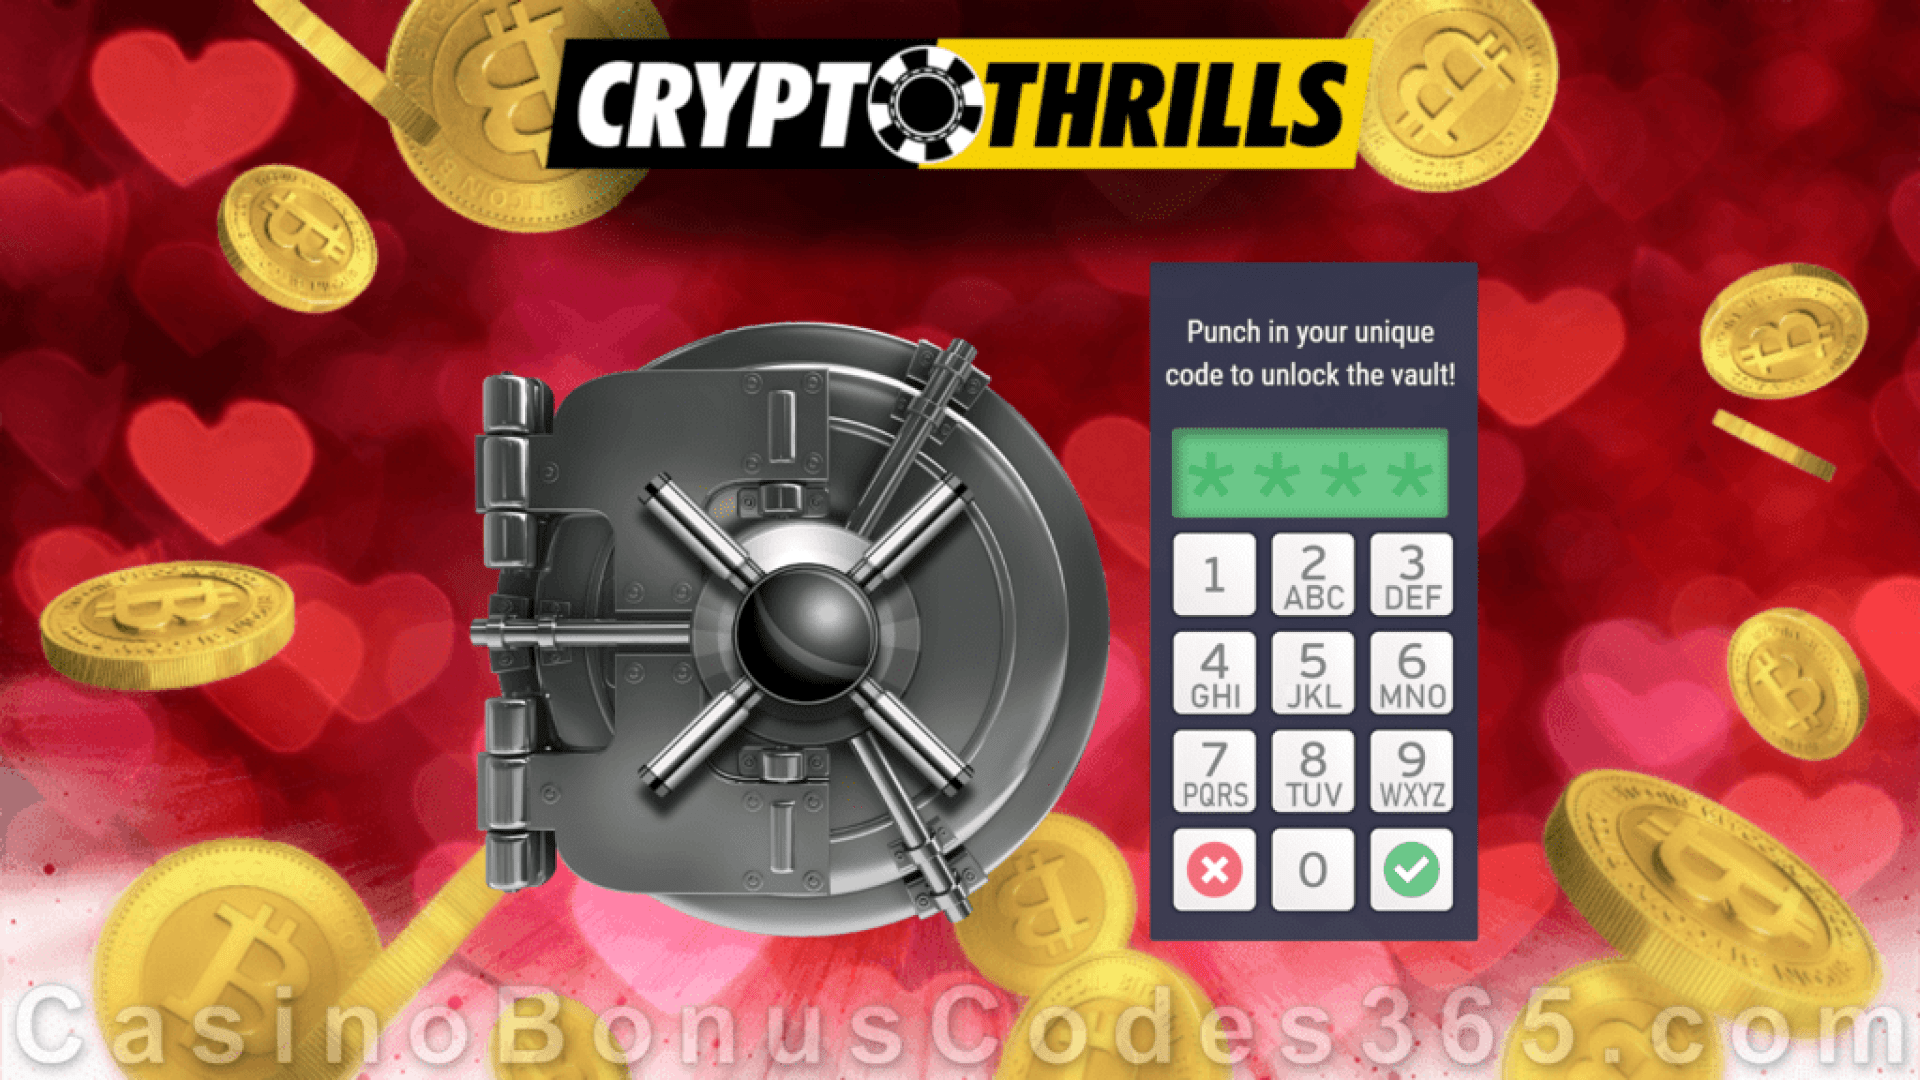 CryptoThrills Casino Loot the Vault Special St. Valentine's Day Bonuses Game